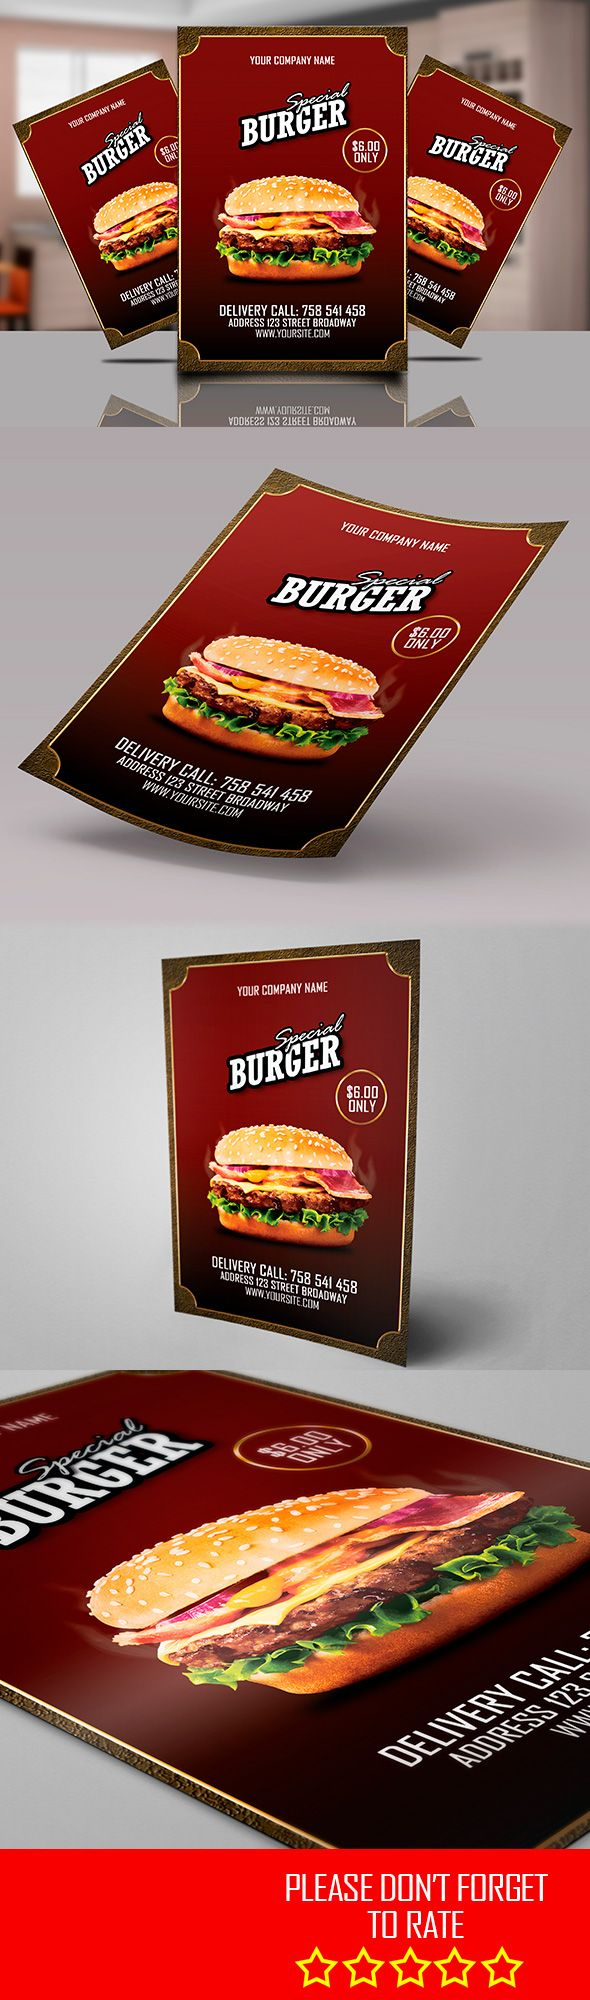 BURGER PROMOTION FLYER TEMPLATE  - All text editable easily - A4 format 210mmx297mm (8.27x11.69 inch) - 3mm bleed - print ready - CMJK color mode - 300 DPI - All layers are well organized, named and grouped  - Software used: Photoshop cs3 or later - Files included: 1 Psd Photoshop, 1 Jpeg and an instruction file (read me) to explain how to make changes easily  - Free fonts used